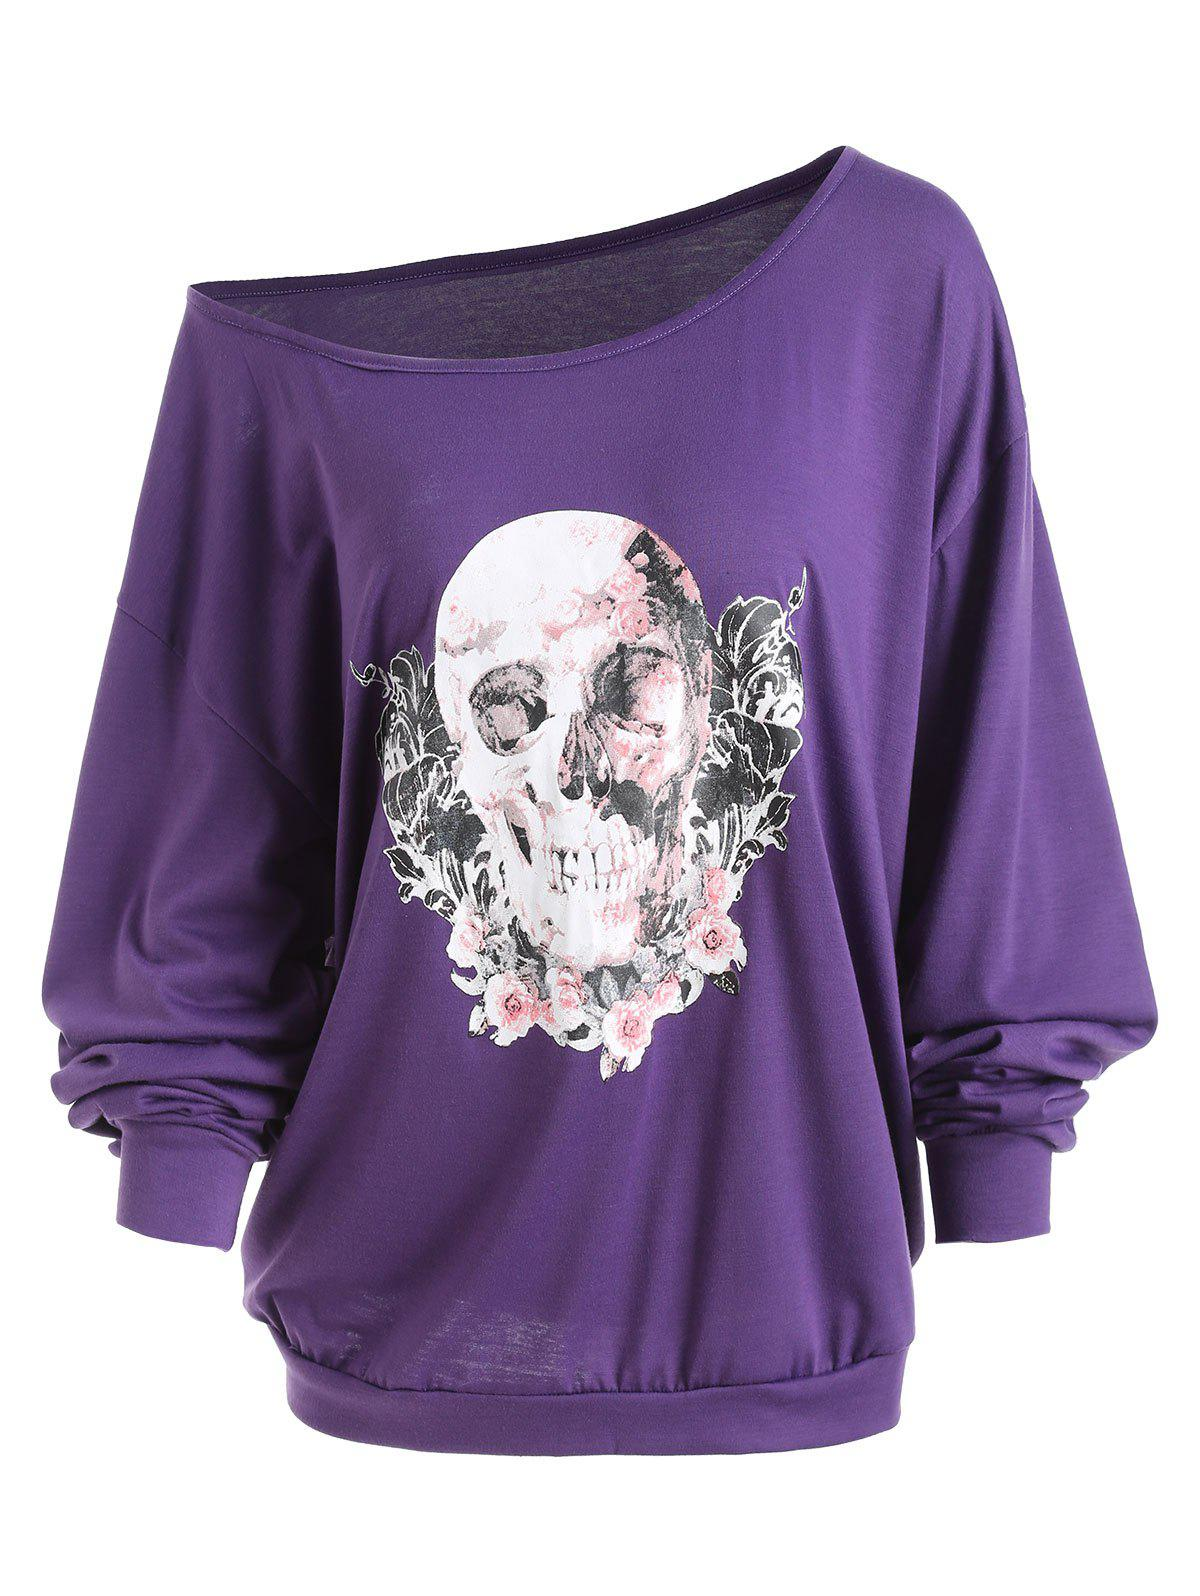 Plus Size Skew Neck Halloween Skull Rose  TeeWOMEN<br><br>Size: 2XL; Color: PURPLE; Material: Cotton Blends,Polyester; Shirt Length: Long; Sleeve Length: Full; Collar: Skew Collar; Style: Fashion; Season: Fall,Spring,Winter; Embellishment: 3D Print; Pattern Type: Skulls; Weight: 0.3200kg; Package Contents: 1 x Tee;